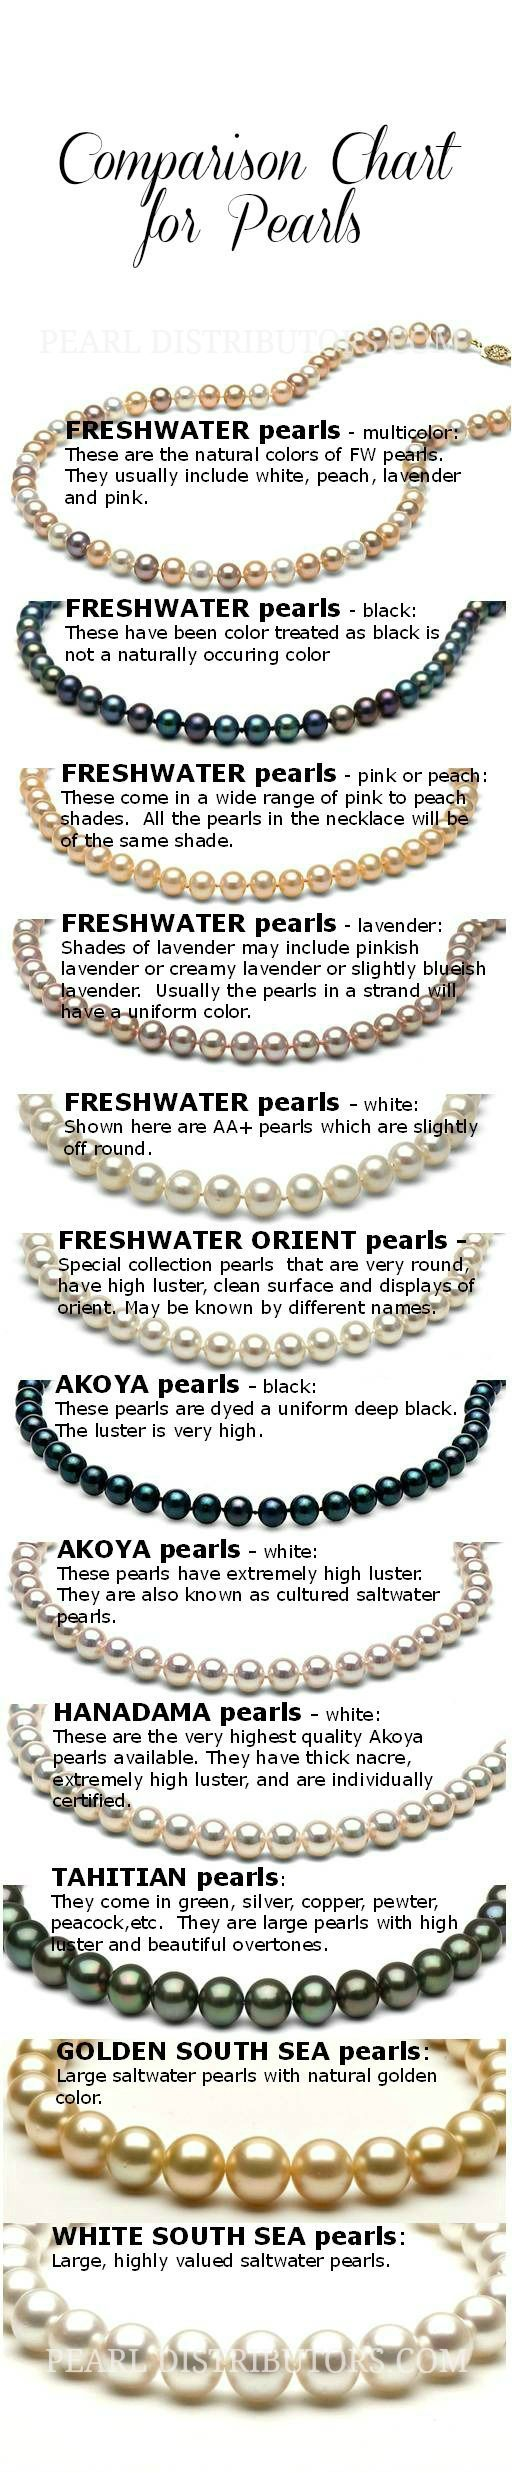 Pearl types and colors